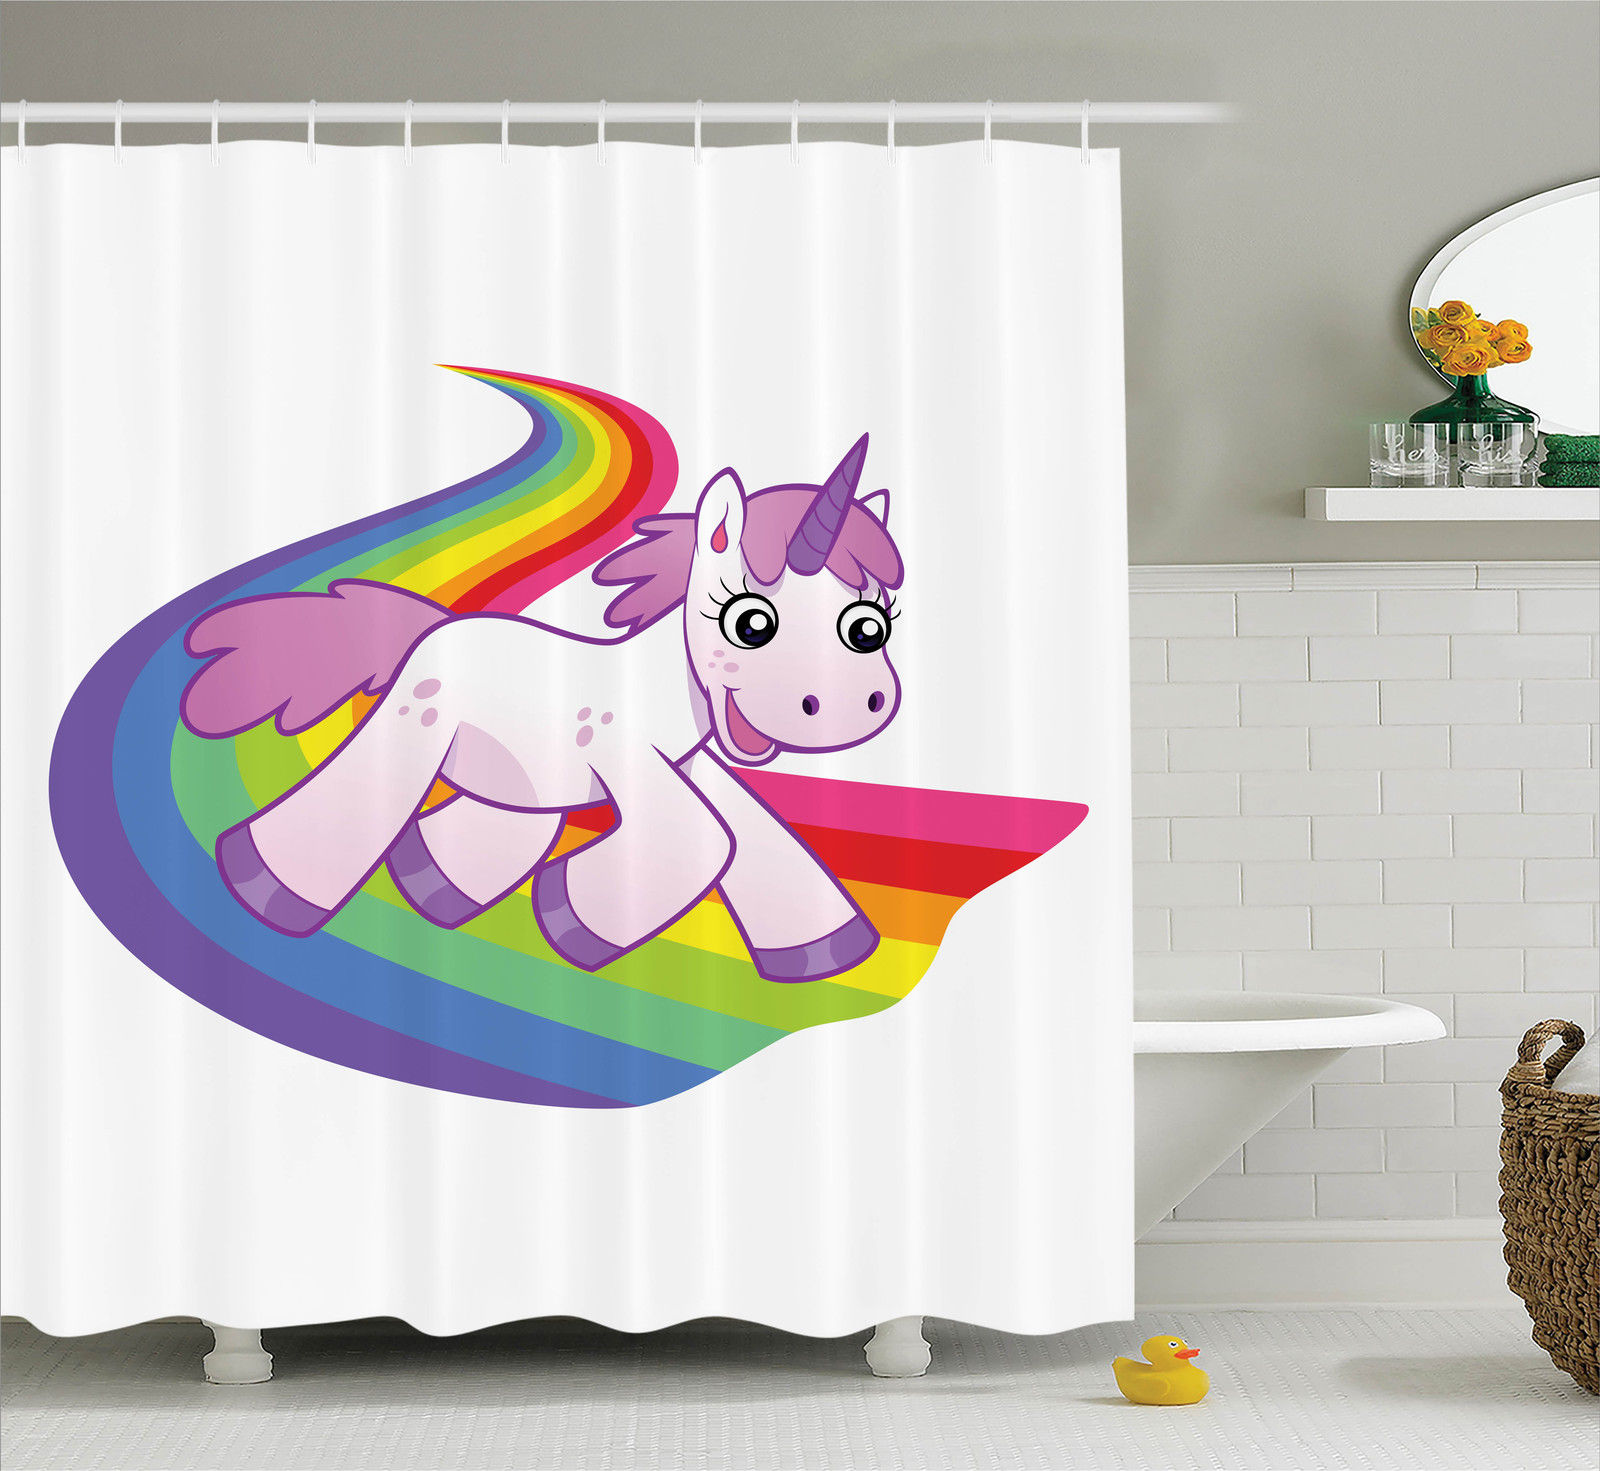 Cartoon Decor  Baby Unicorn Runs On The Rainbow Mythological Fantasy Legendary Creature With The Horn, Bathroom Accessories, 69W X 84L Inches Extra Long, By Ambesonne